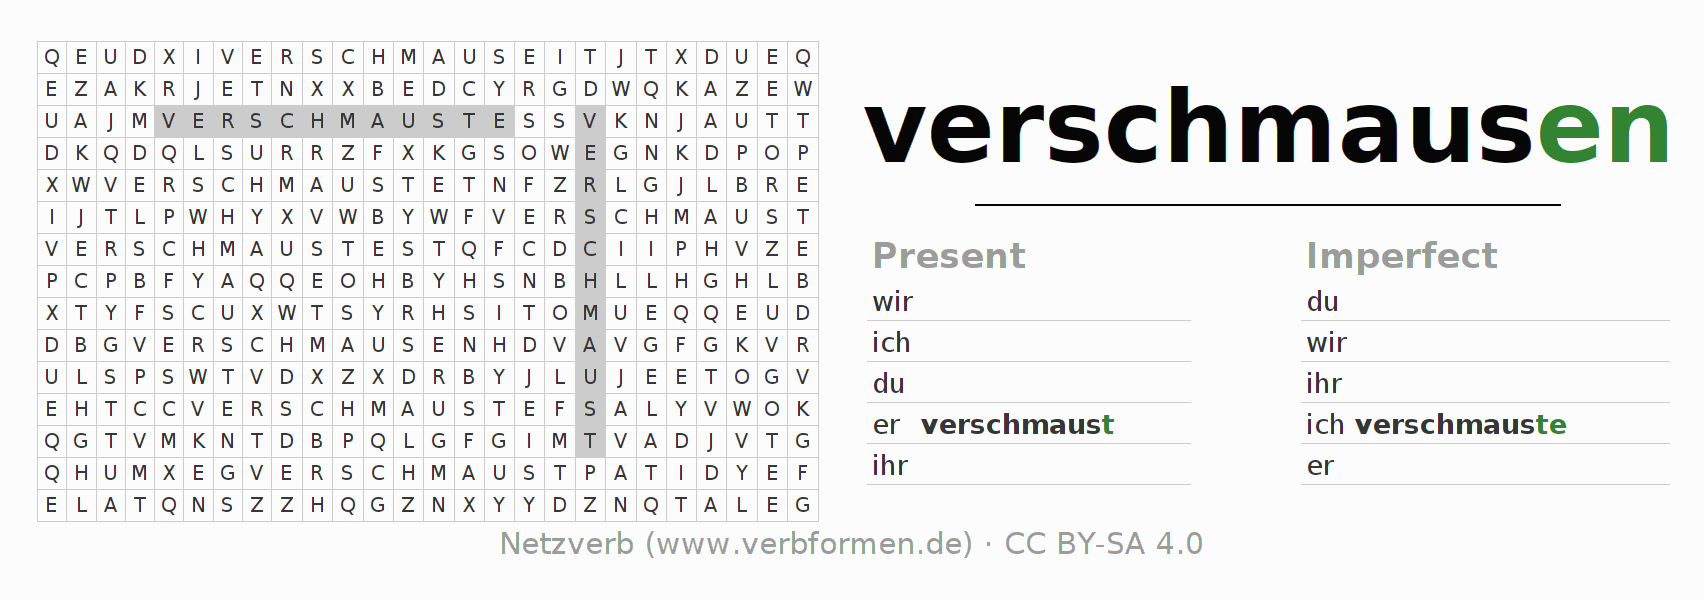 Word search puzzle for the conjugation of the verb verschmausen